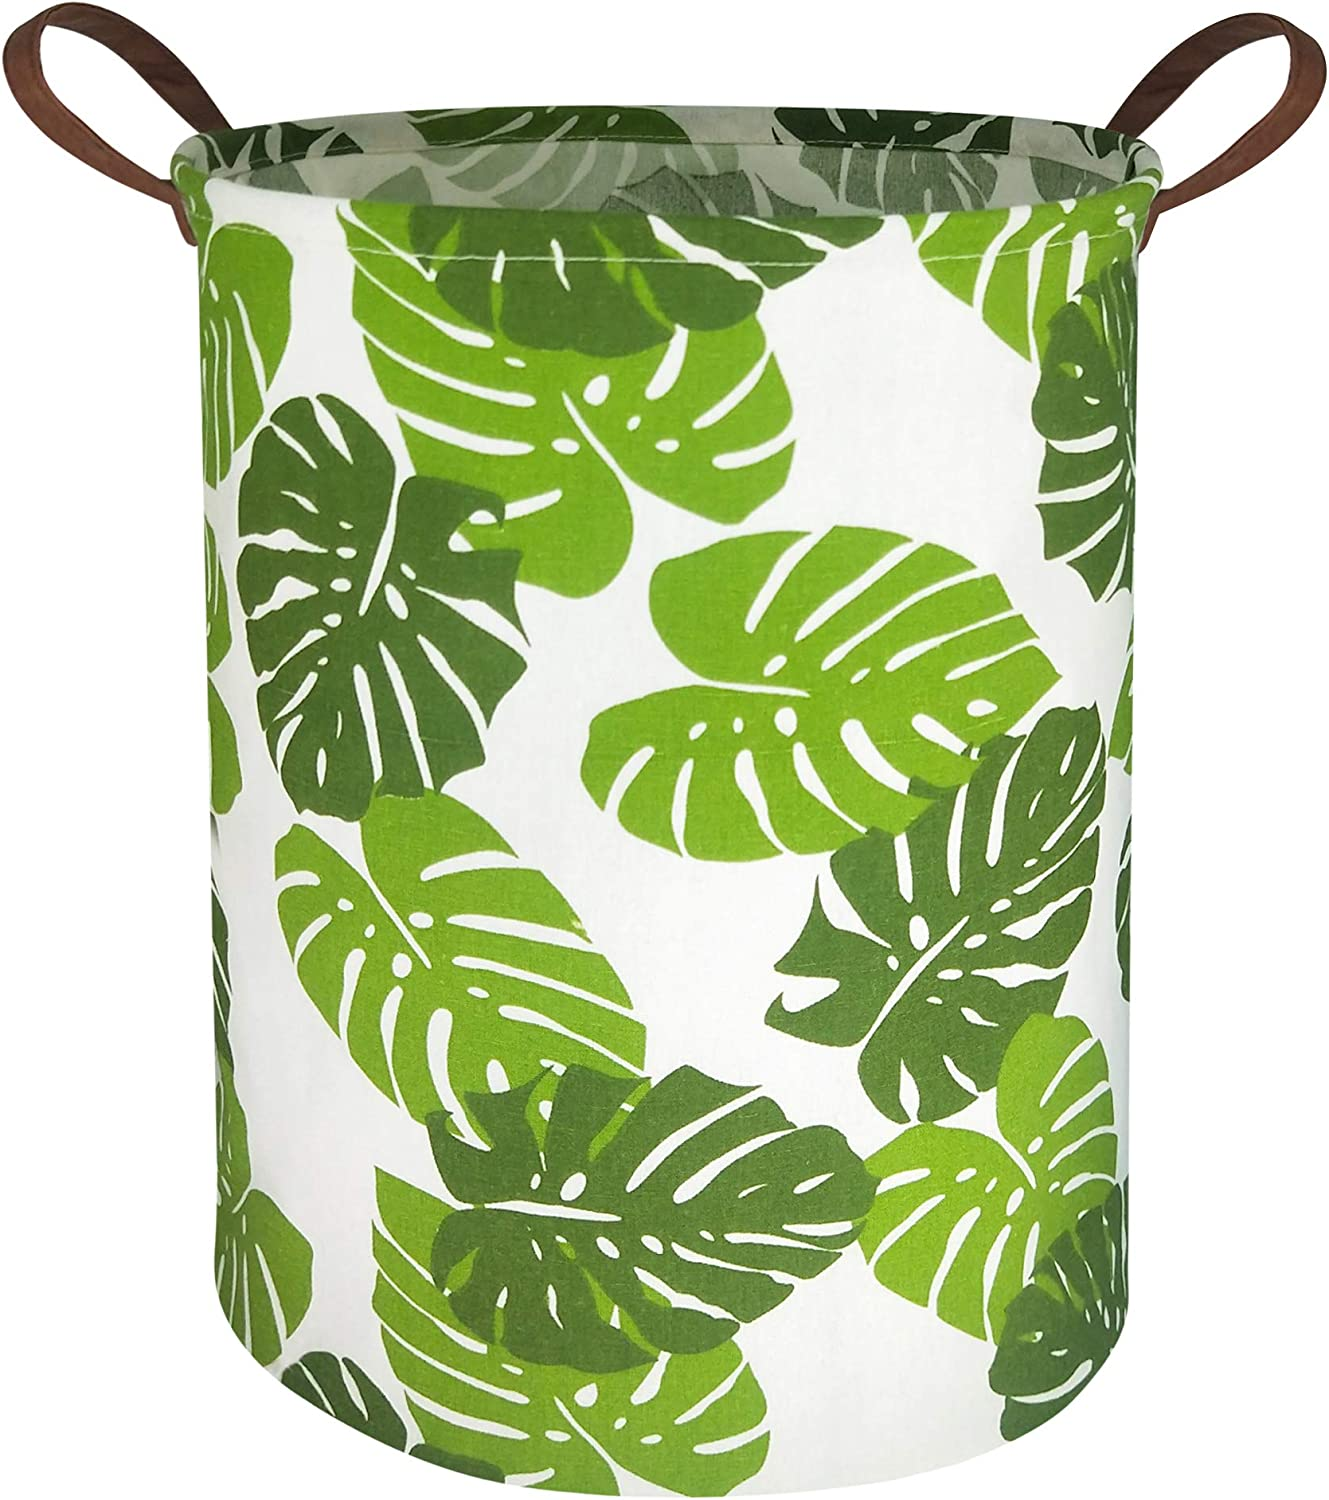 HIYAGON Laundry Baskets,Collapsible Hamper, Canvas Fabric Laundry Hamper,for Toy Organizer Bins,Gift Baskets, Bedroom, Clothes, Nursery,Kids,Boys (Green Leaf)